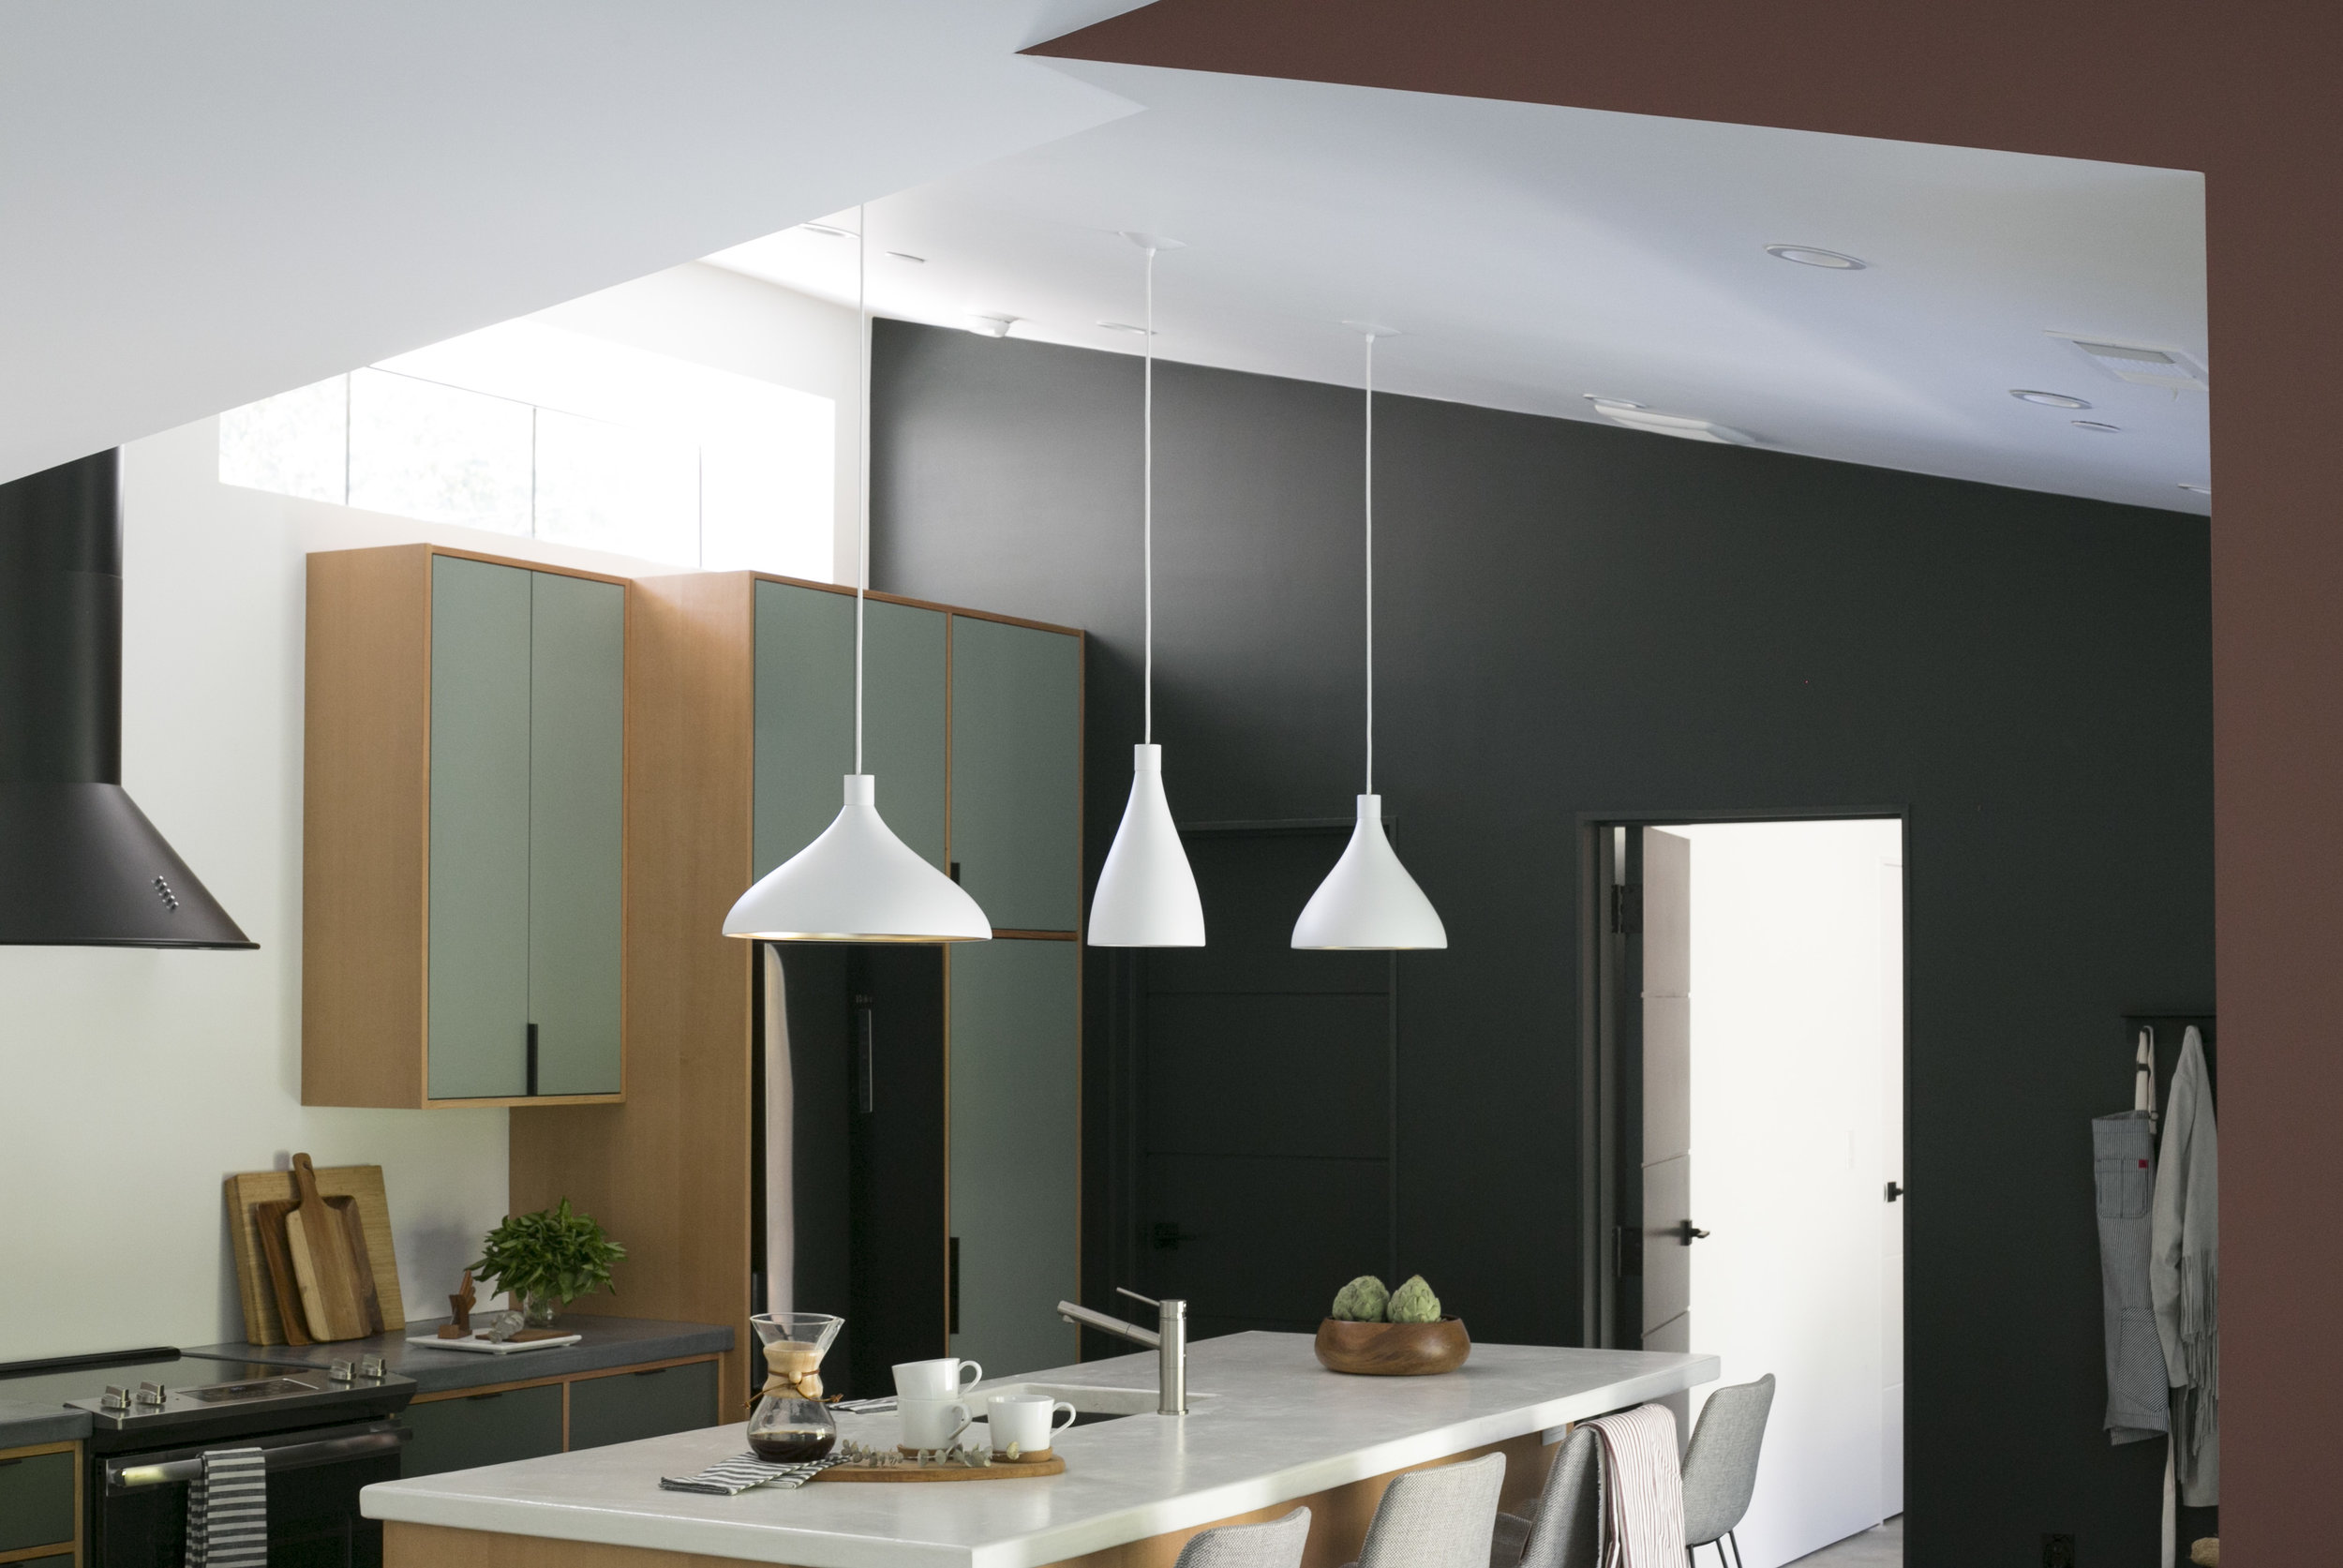 switch-house-kitchen-interior.jpg